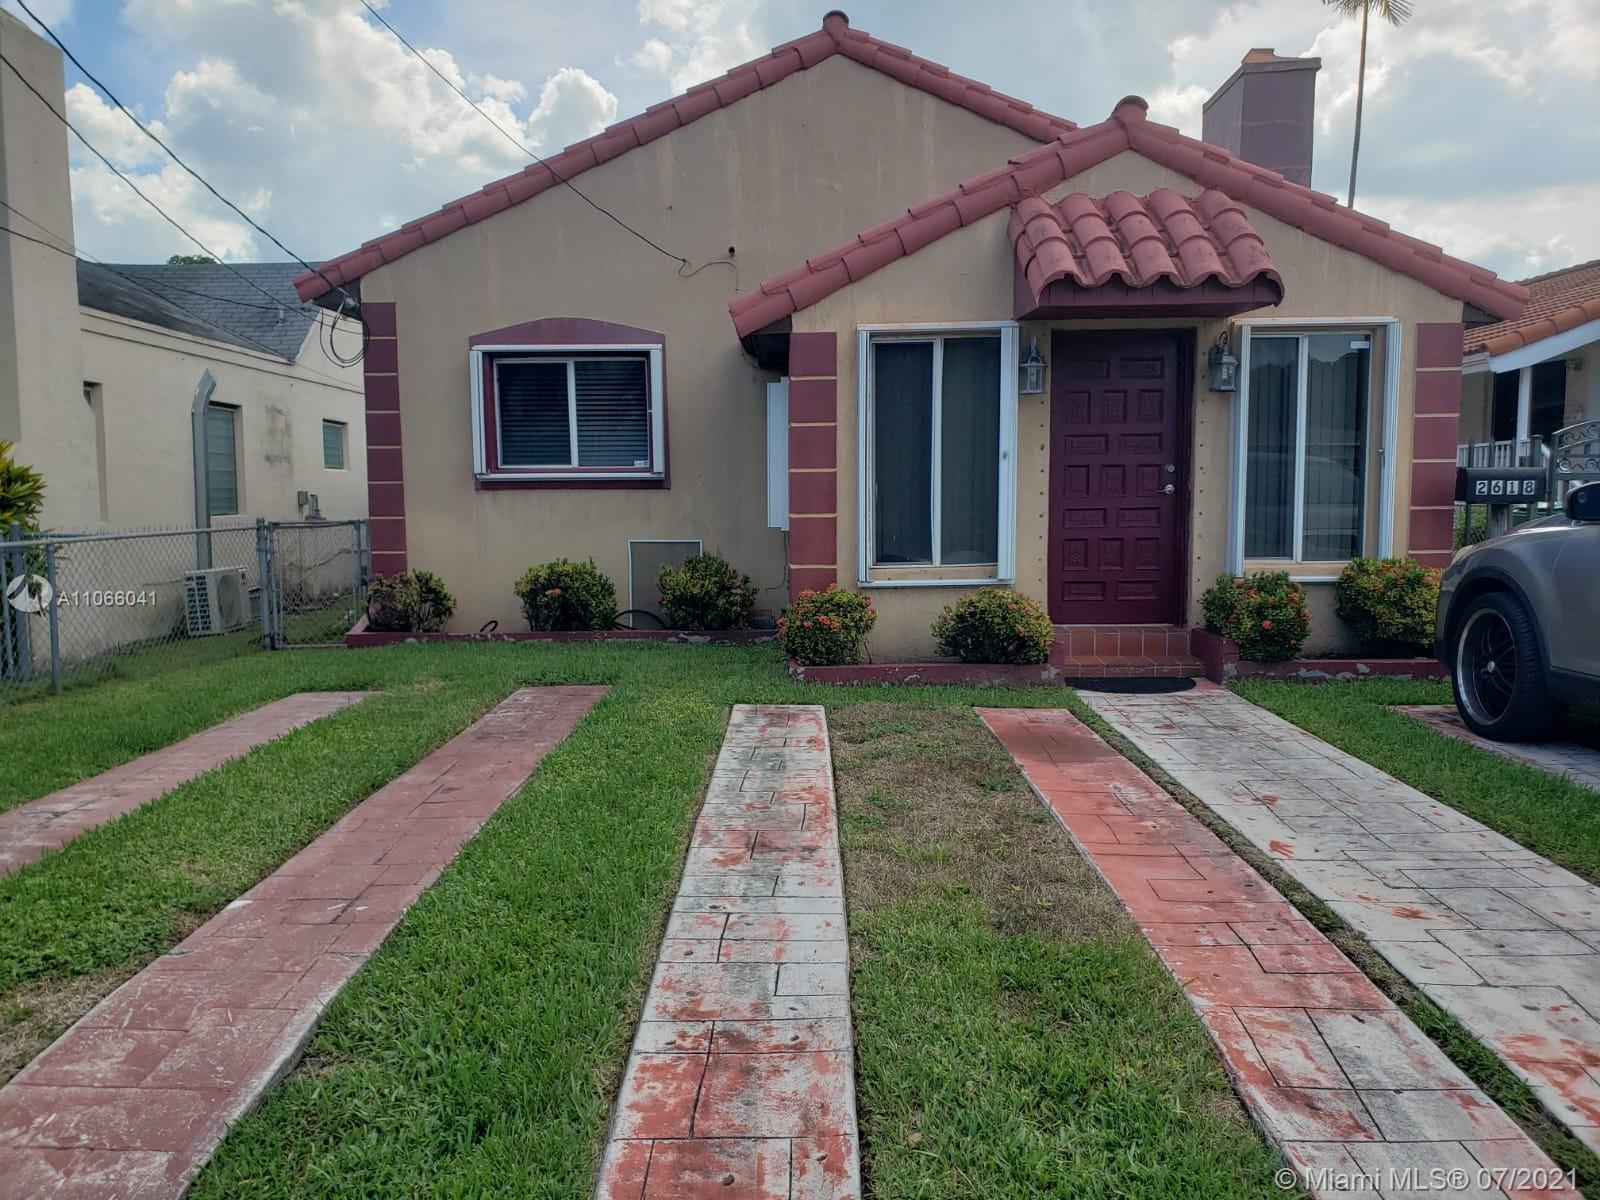 Welcome to Miami, just minutes from Coral Gables. Charming and beautiful! Enjoy the Miami life with this 3/2 home in Silver Bluff.  Great location, minutes from all that Miami has to offer. The home is well maintained, very cosy with a lovely layout. Lovely backyard for entertaining.